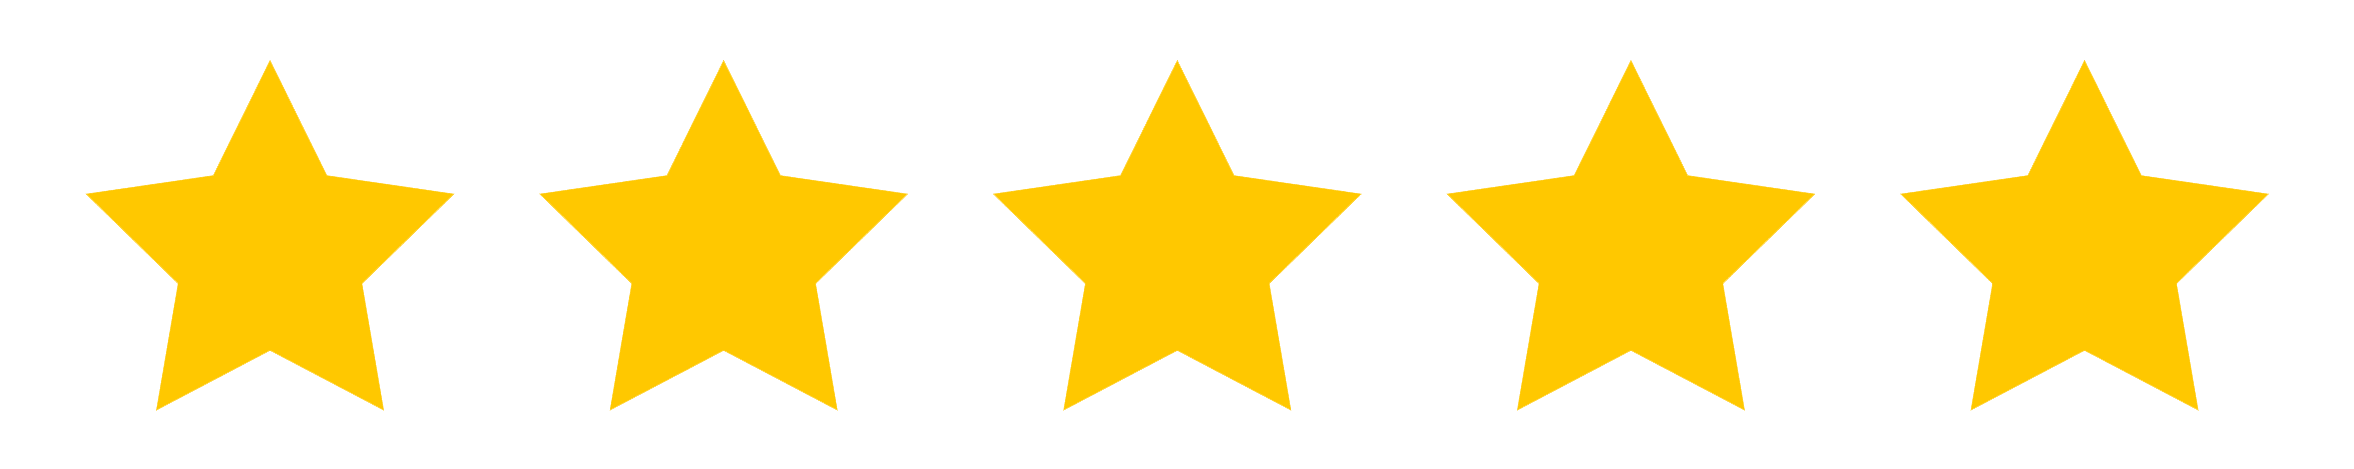 Reviews star rating from Diane C. for A-1 Self Storage in La Mesa, California